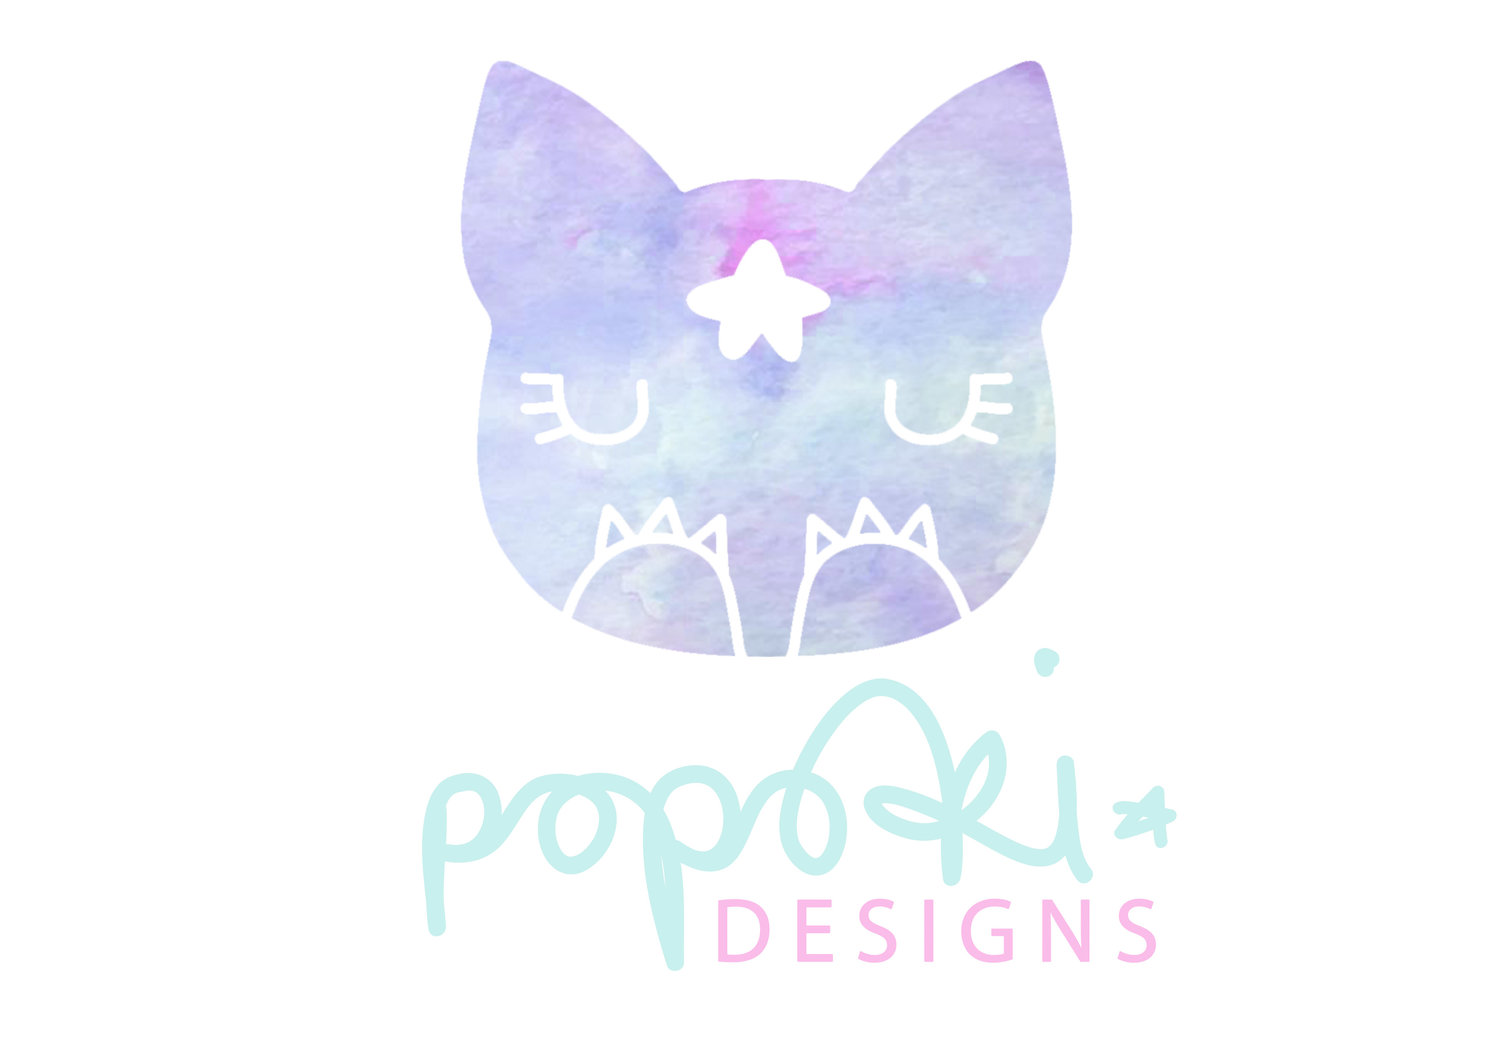 Press On Nails and Designs - PopokiDesigns